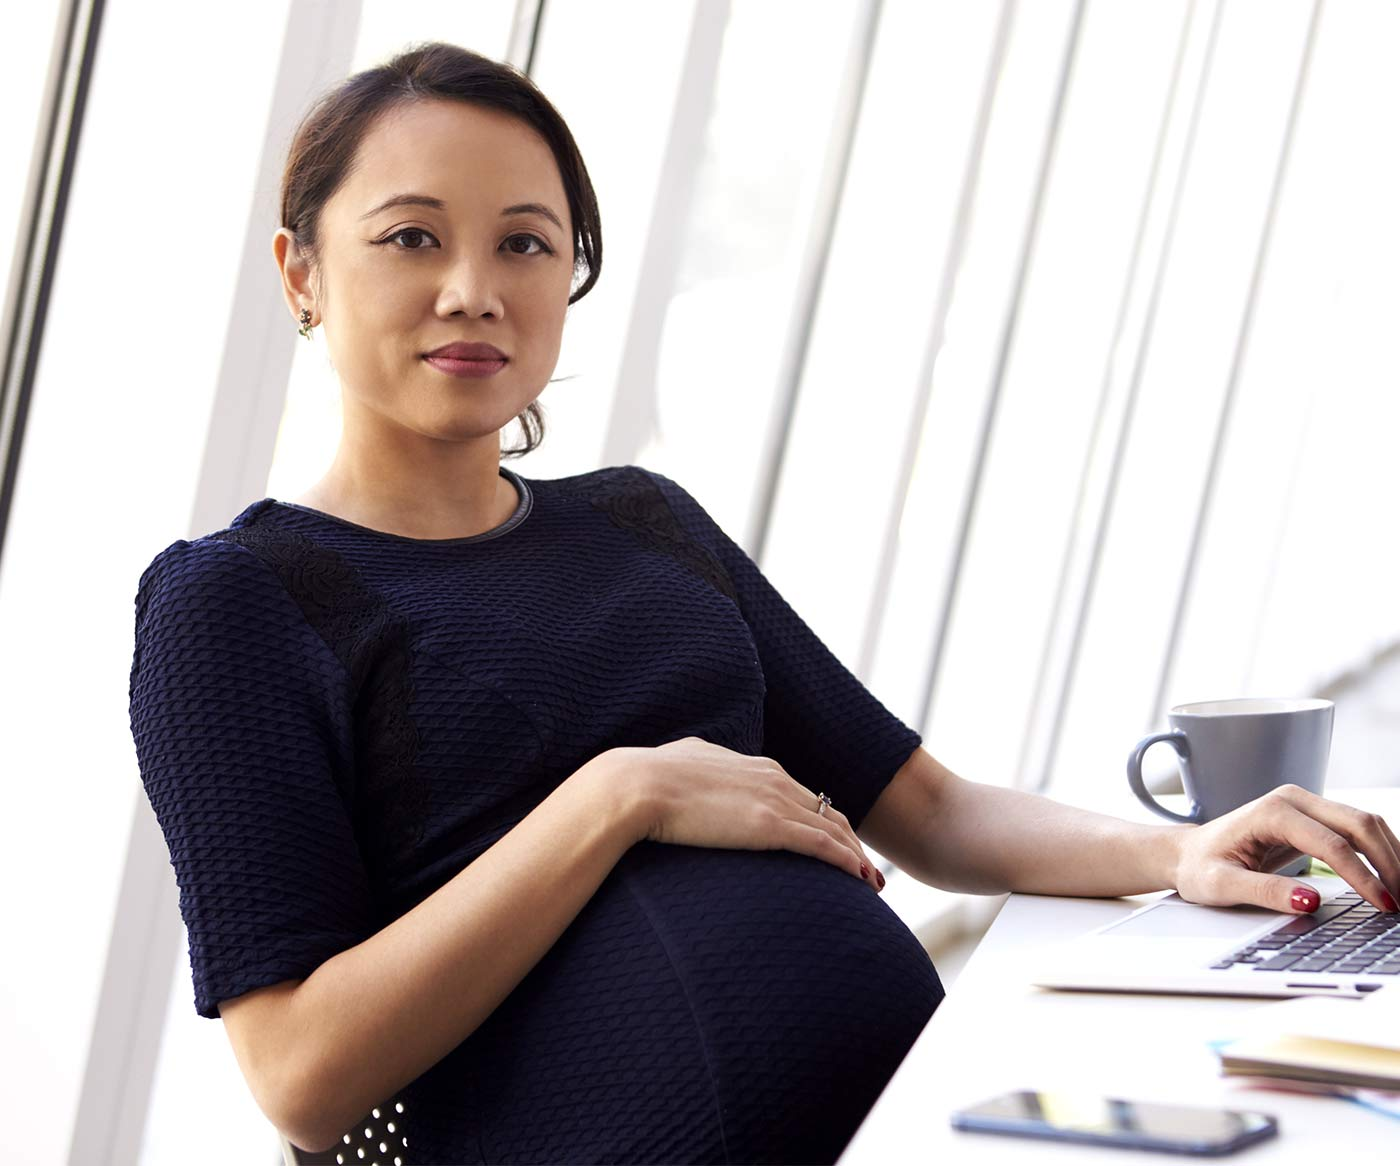 A pregnant woman at the office: signs to stop working during pregnancy